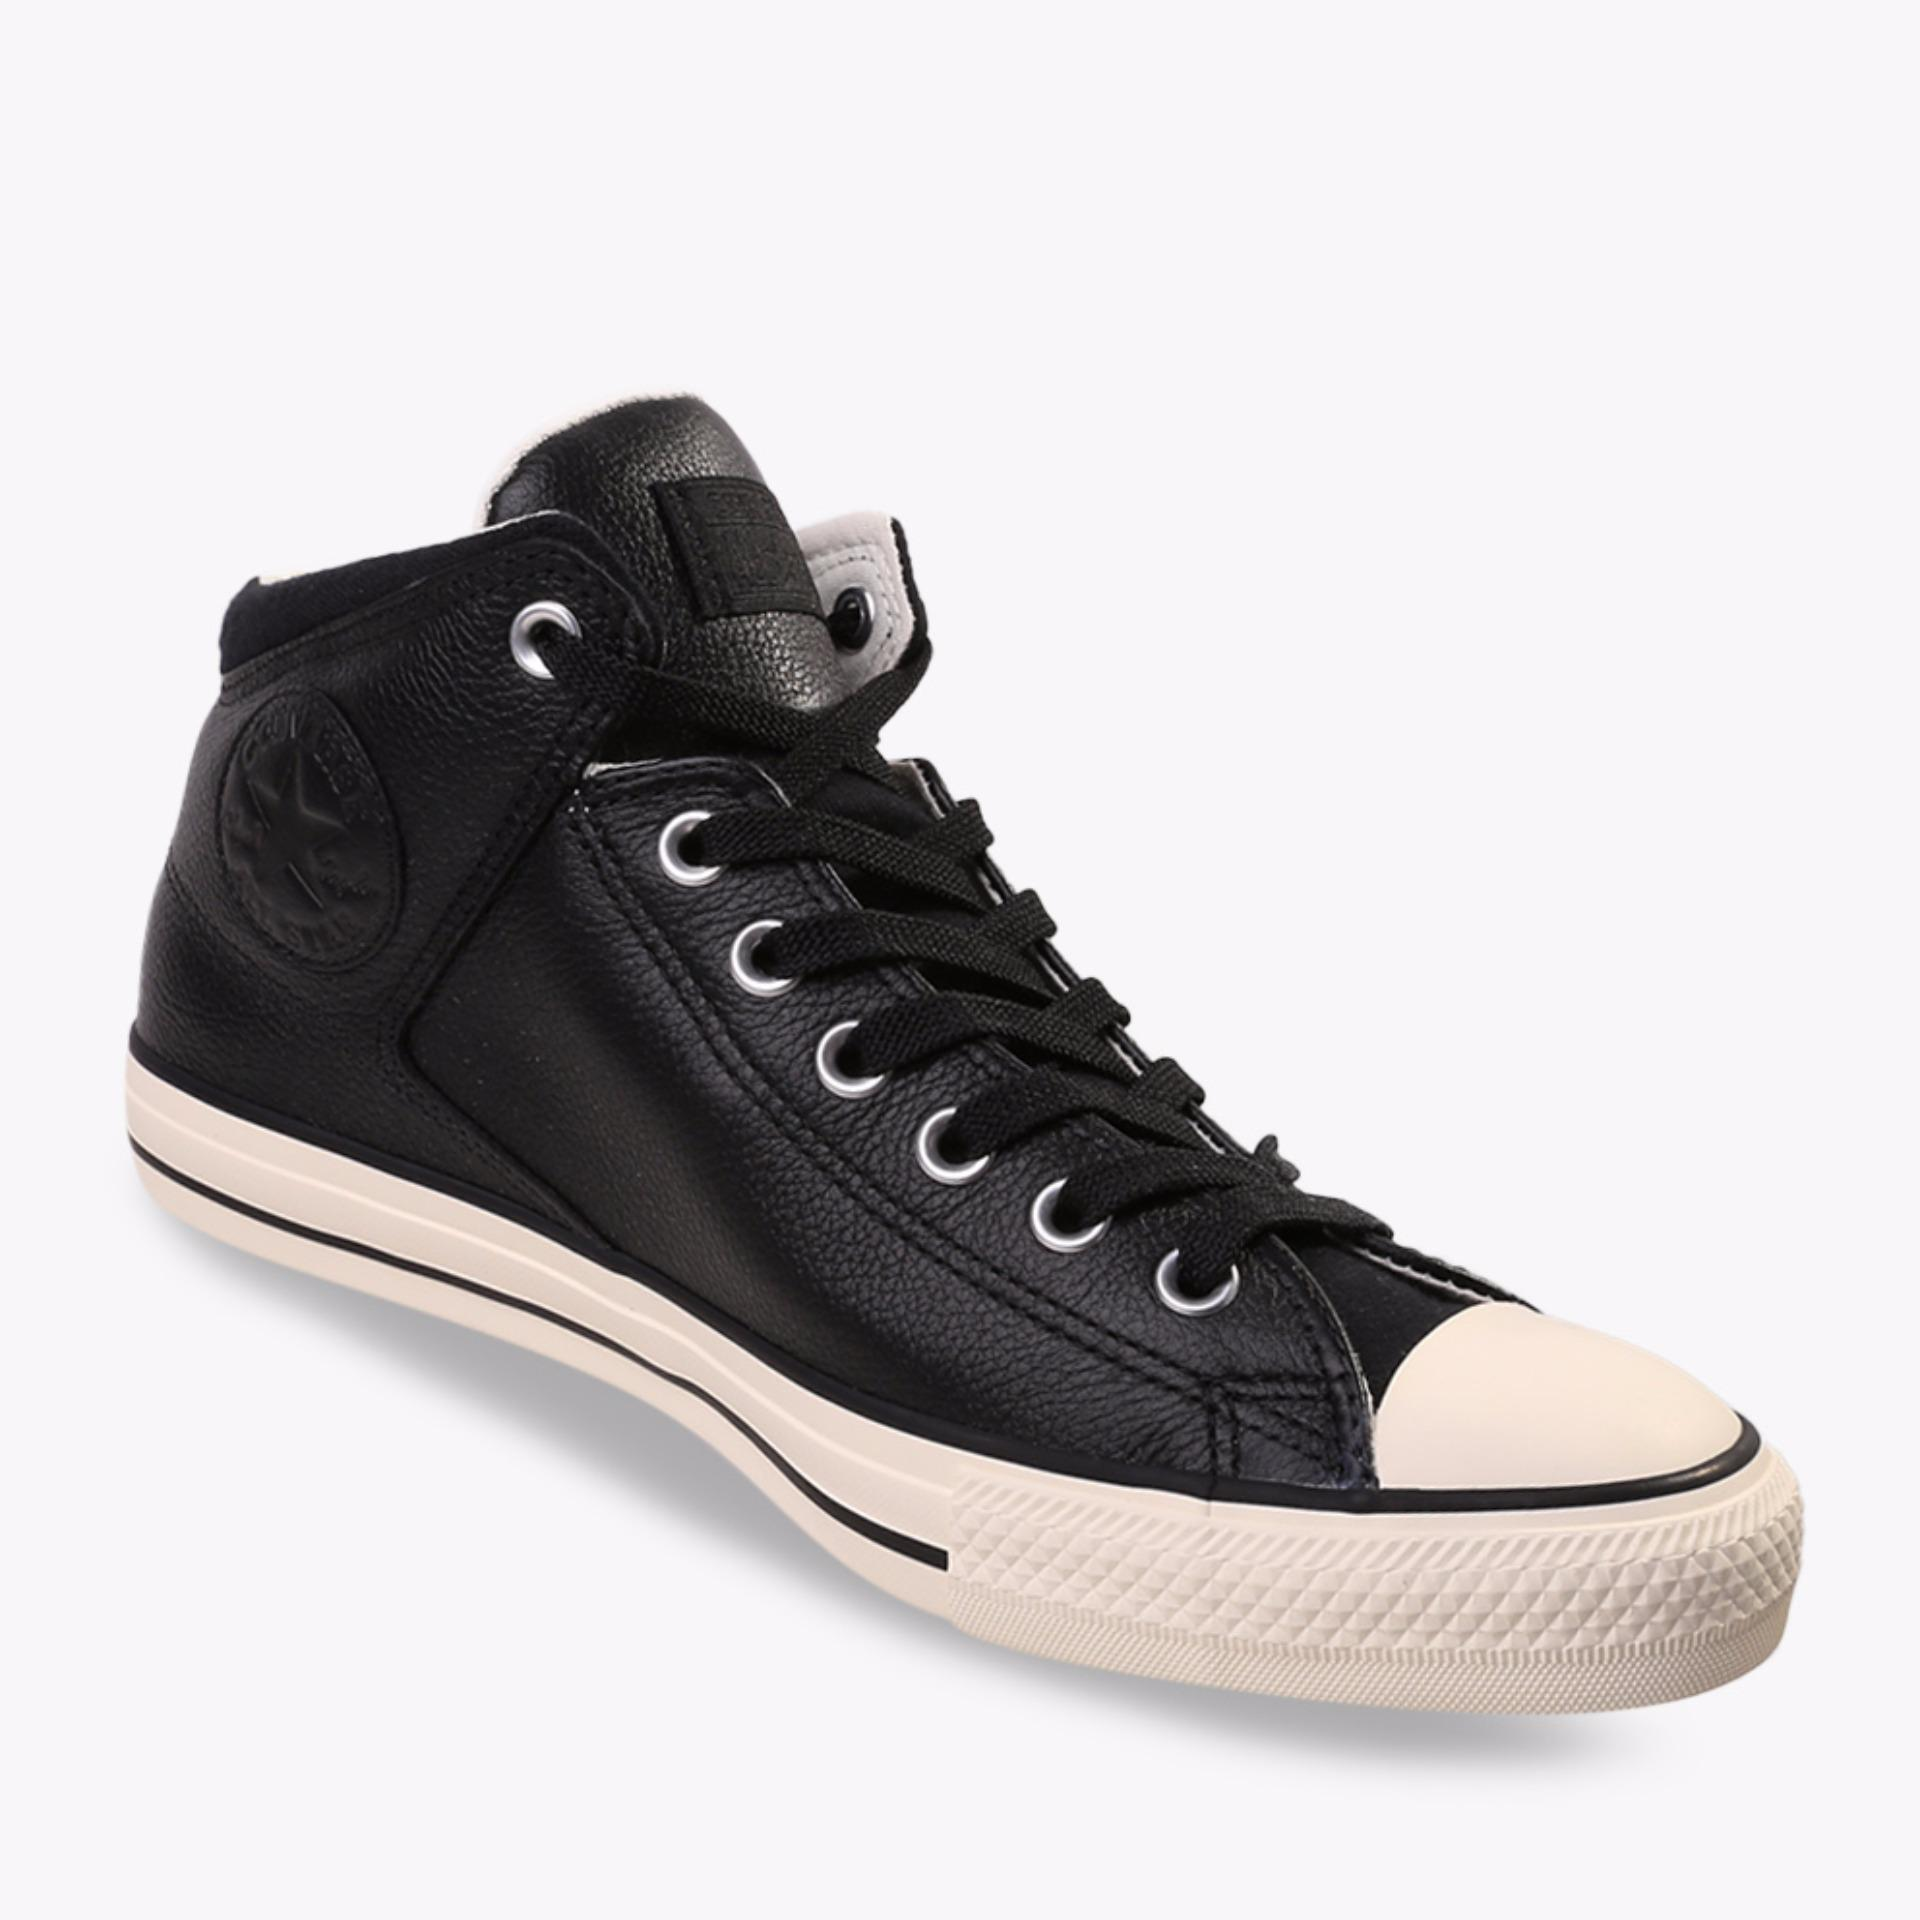 Review Converse Chuck Taylor All Star High Stret Men S Sneakers Shoes Hitam Converse